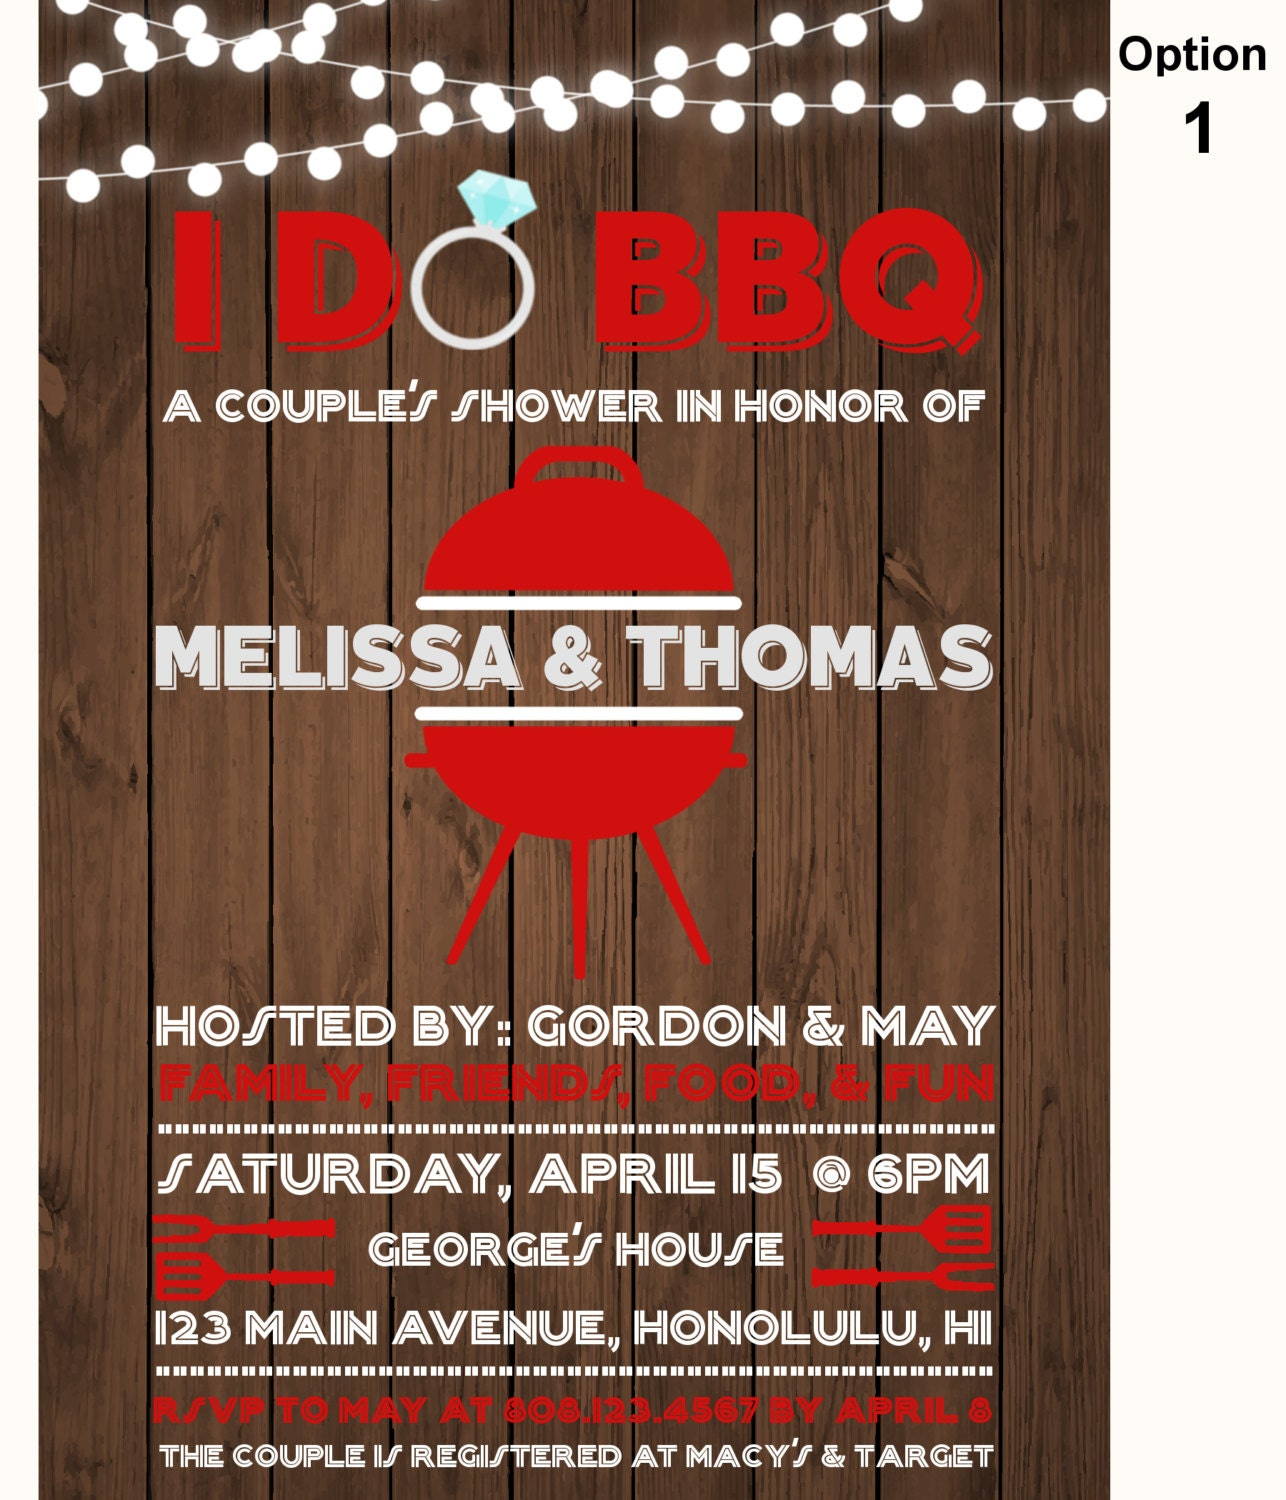 I Do BBQ Couples Shower Invitation, Barbeque Cookout Wedding ...